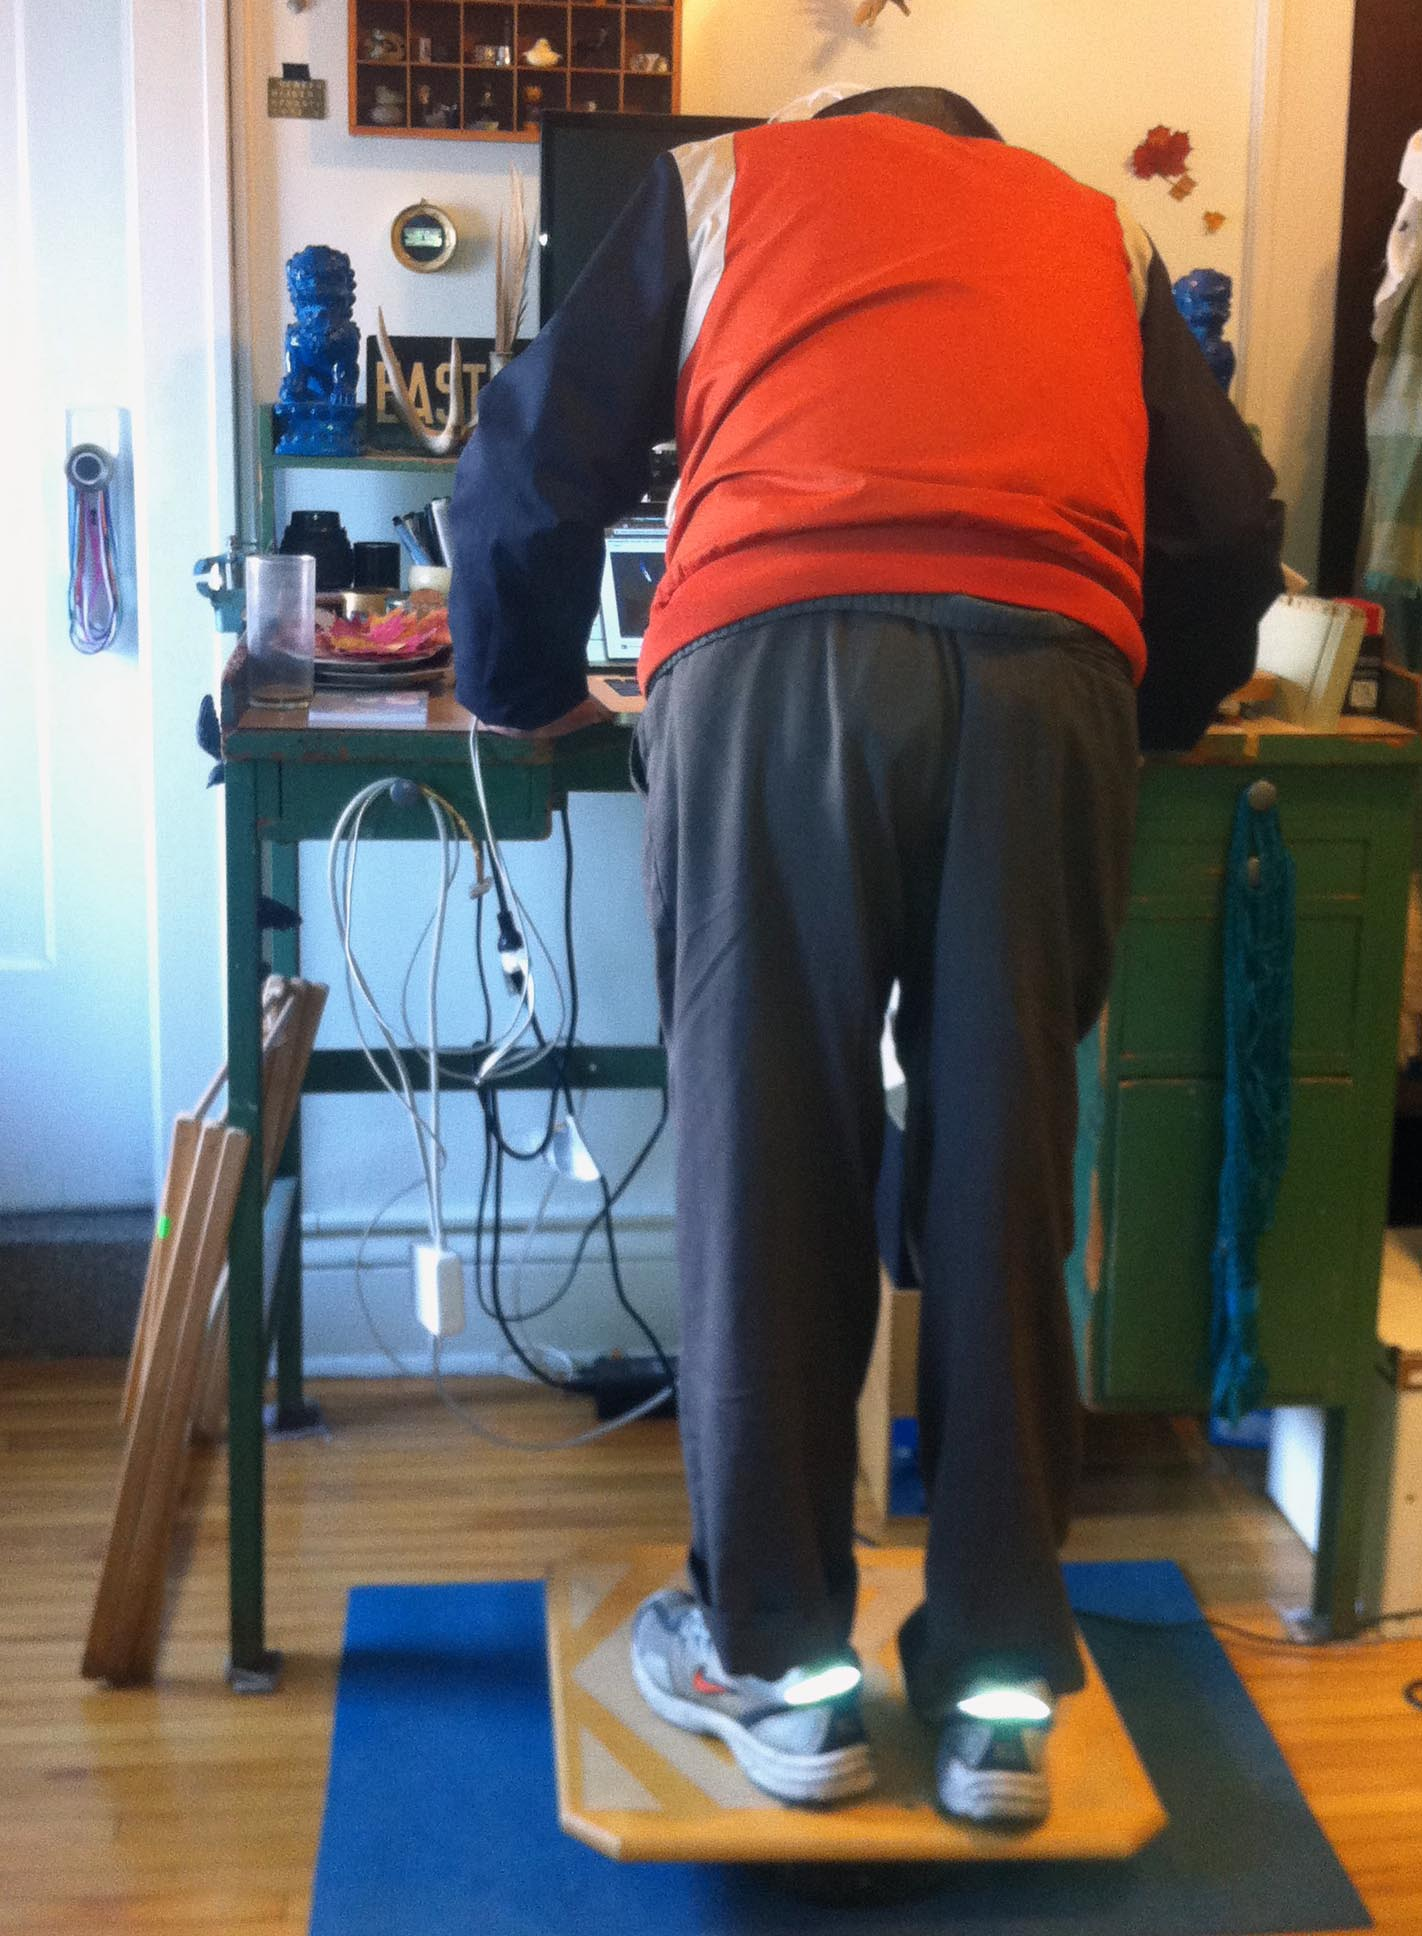 Tank balancing on the balance board at a standing desk.